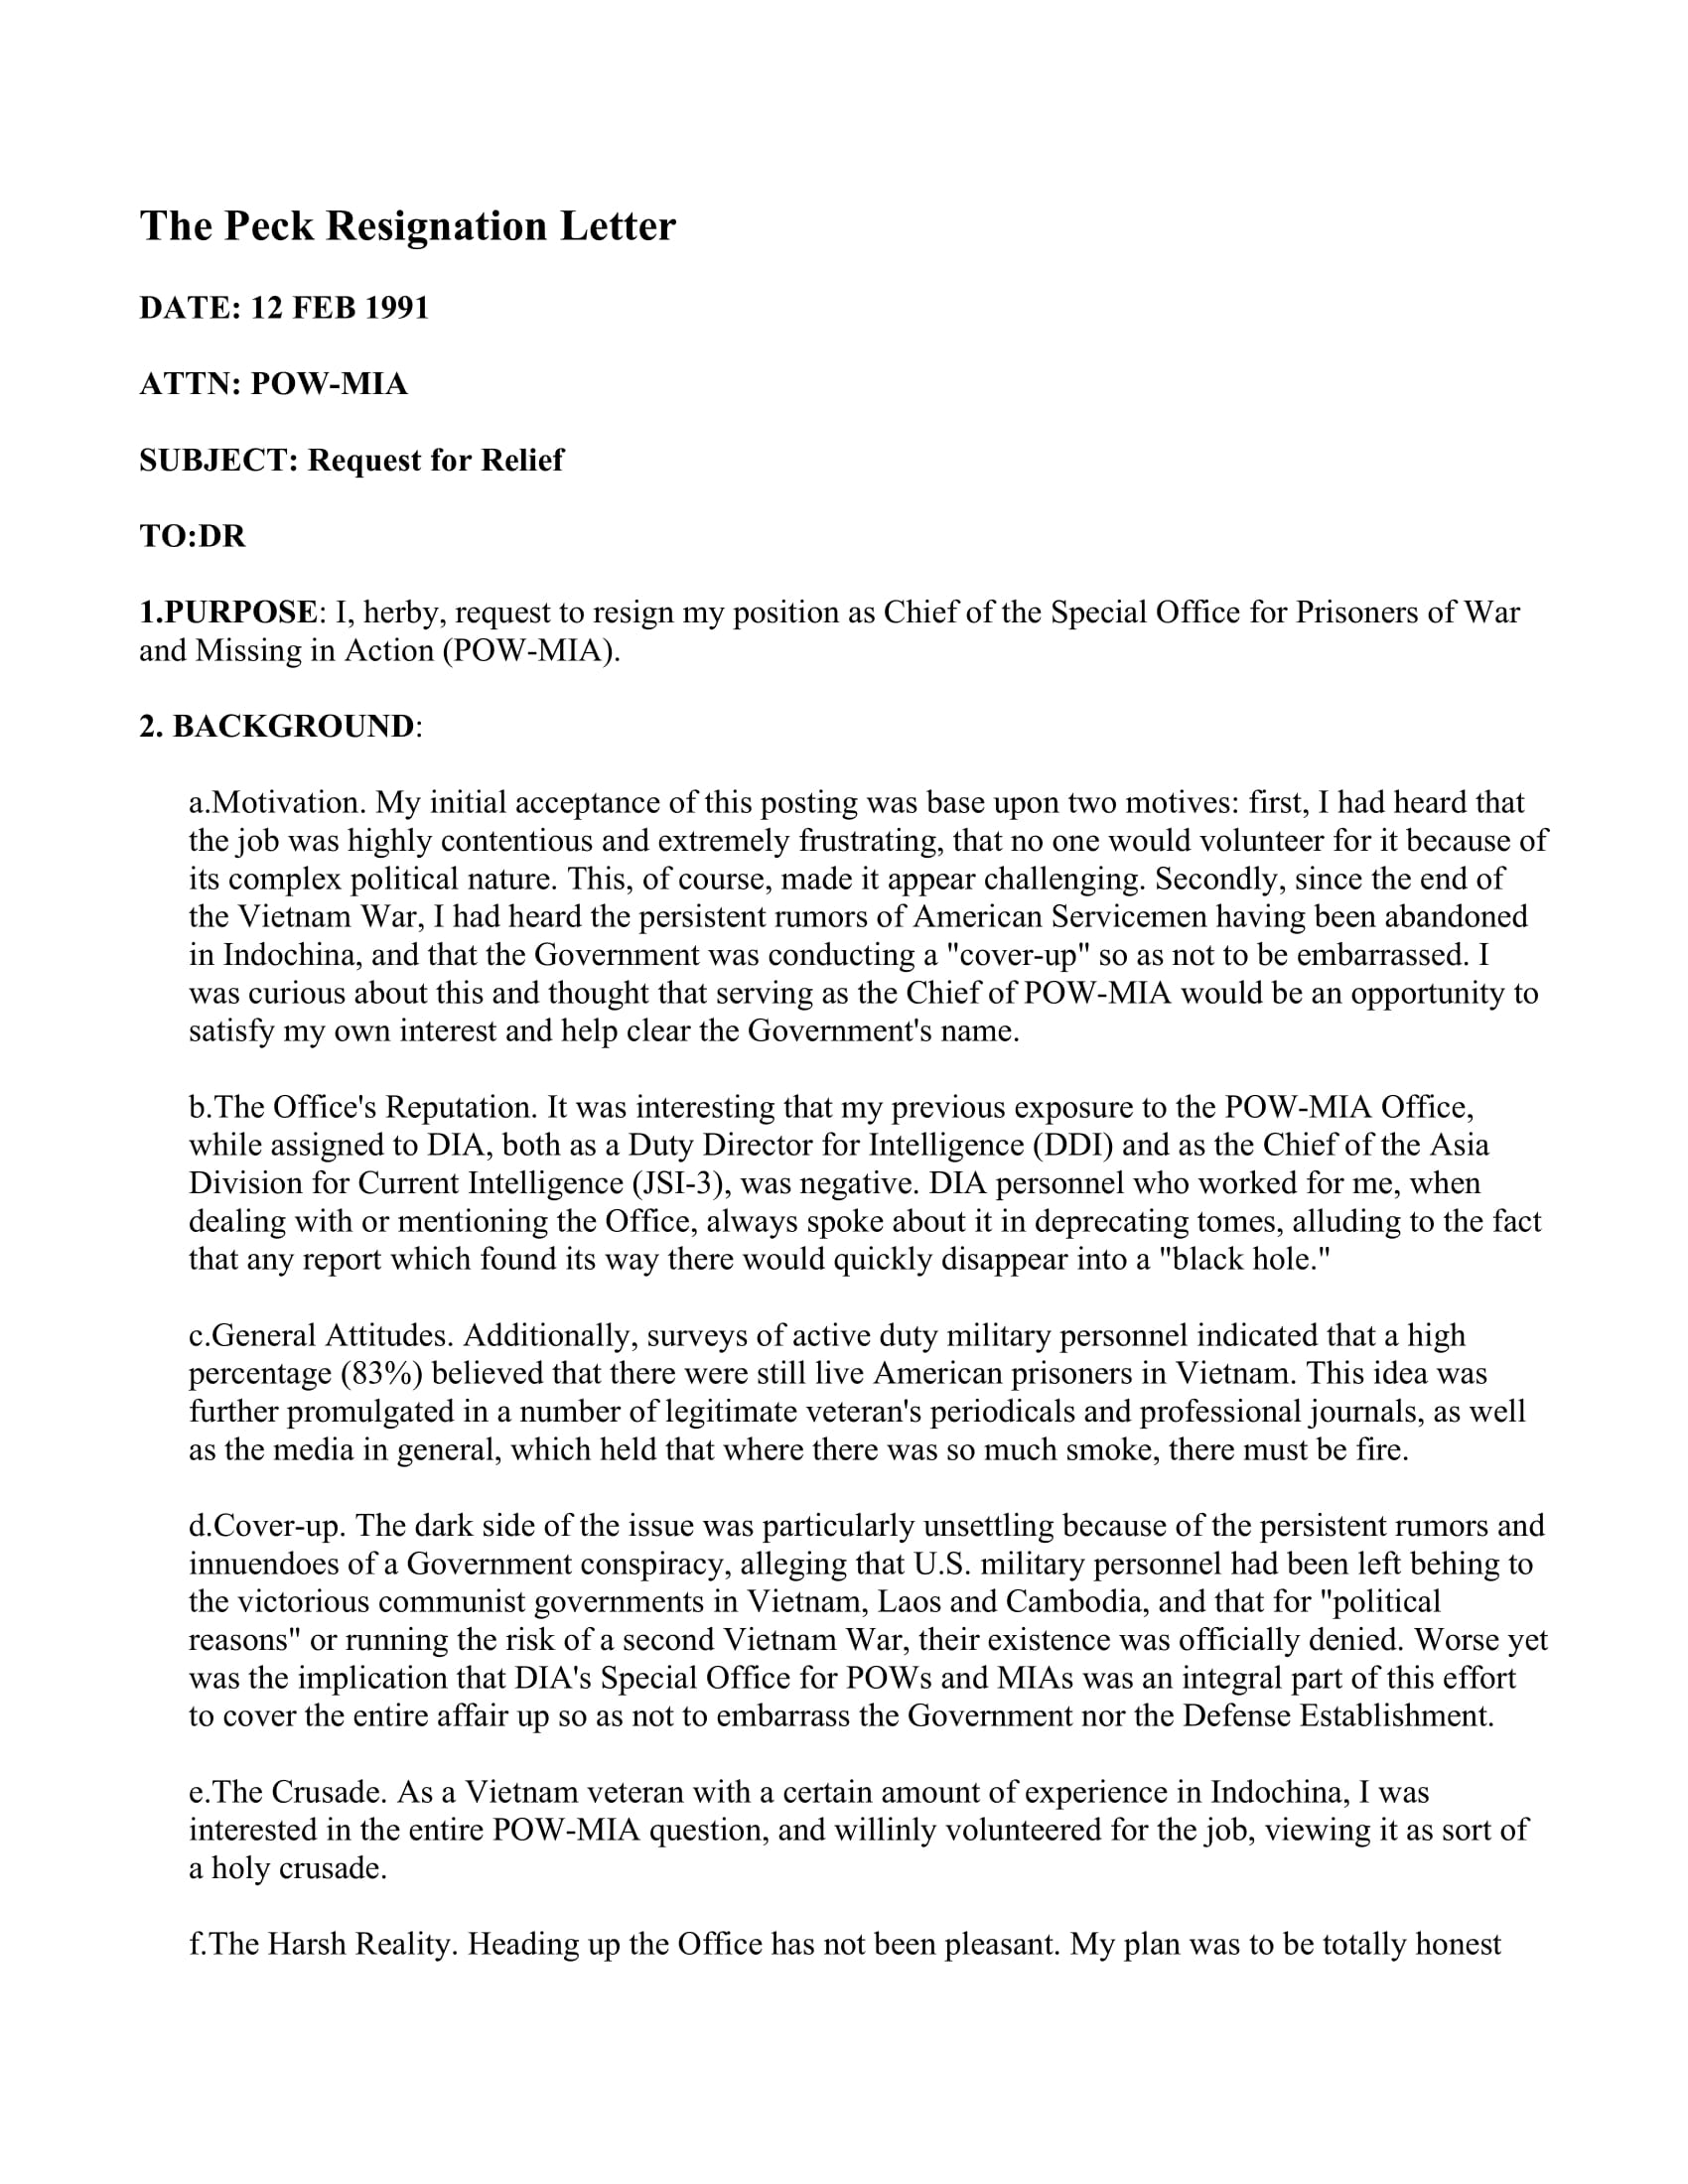 chief army officer resignation letter example